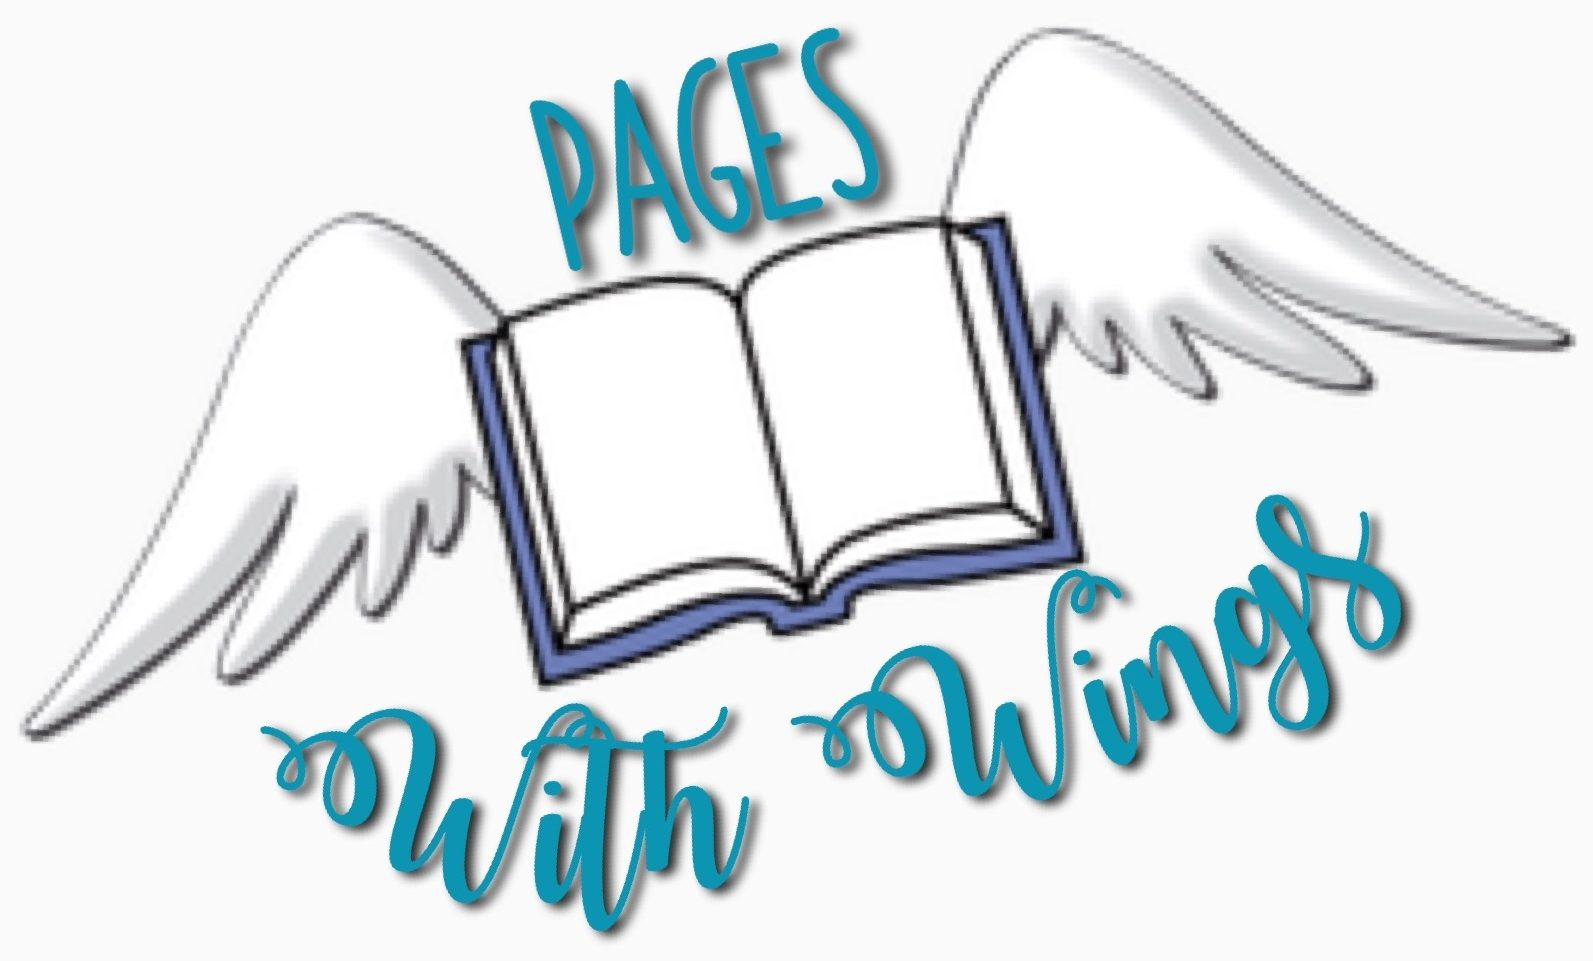 Pages With Wings